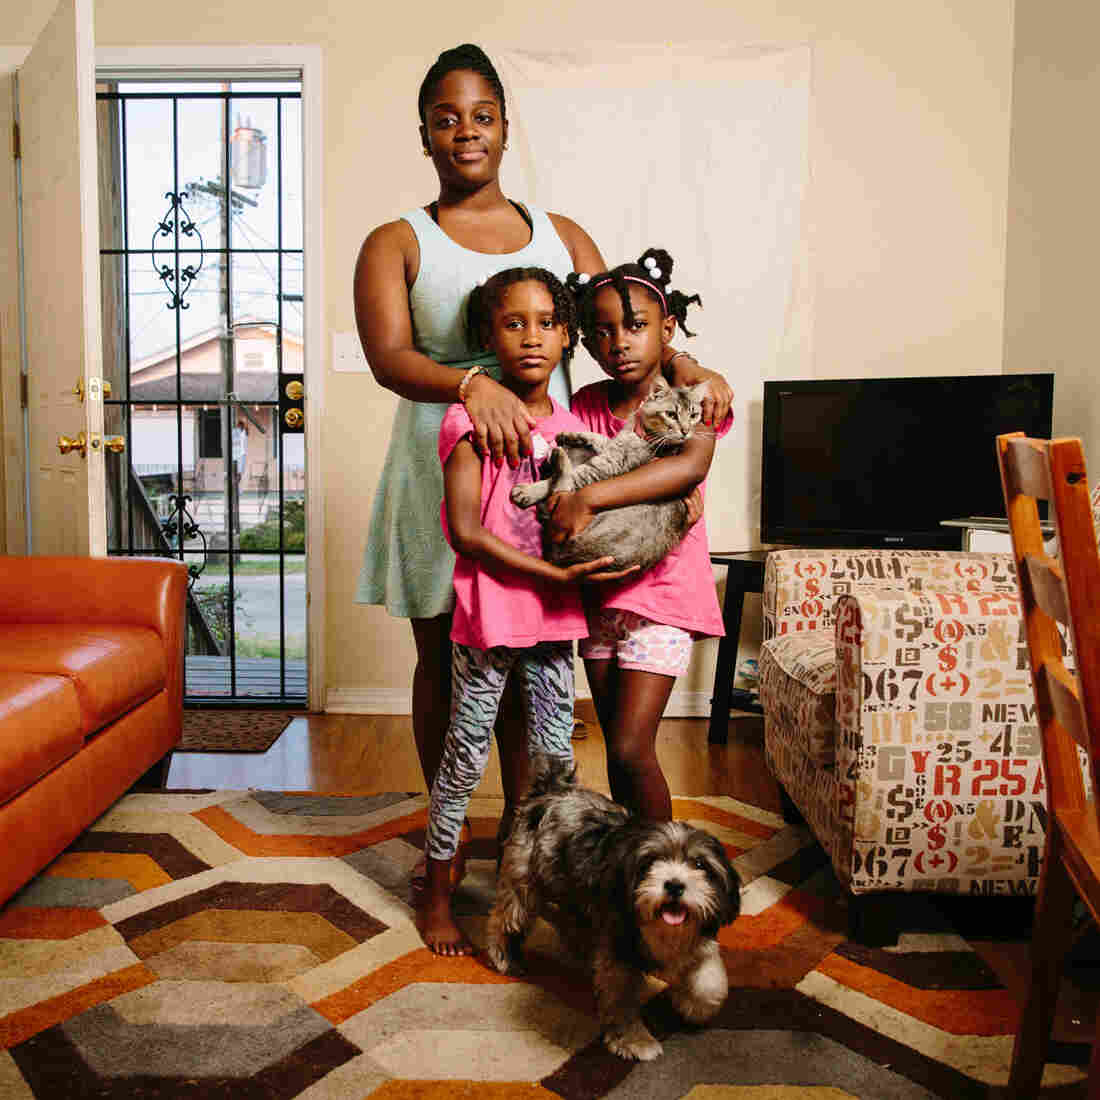 """Dyha Gresham (front, left), her older sister Briceshanay (in back) and Briceshanay's daughter Uri stand in their New Orleans home with the family's cat Sugar-Pepper and dog Selena. After Katrina, Briceshanay says, she relied on theater and the arts to help her """"move through terrible and difficult times."""""""